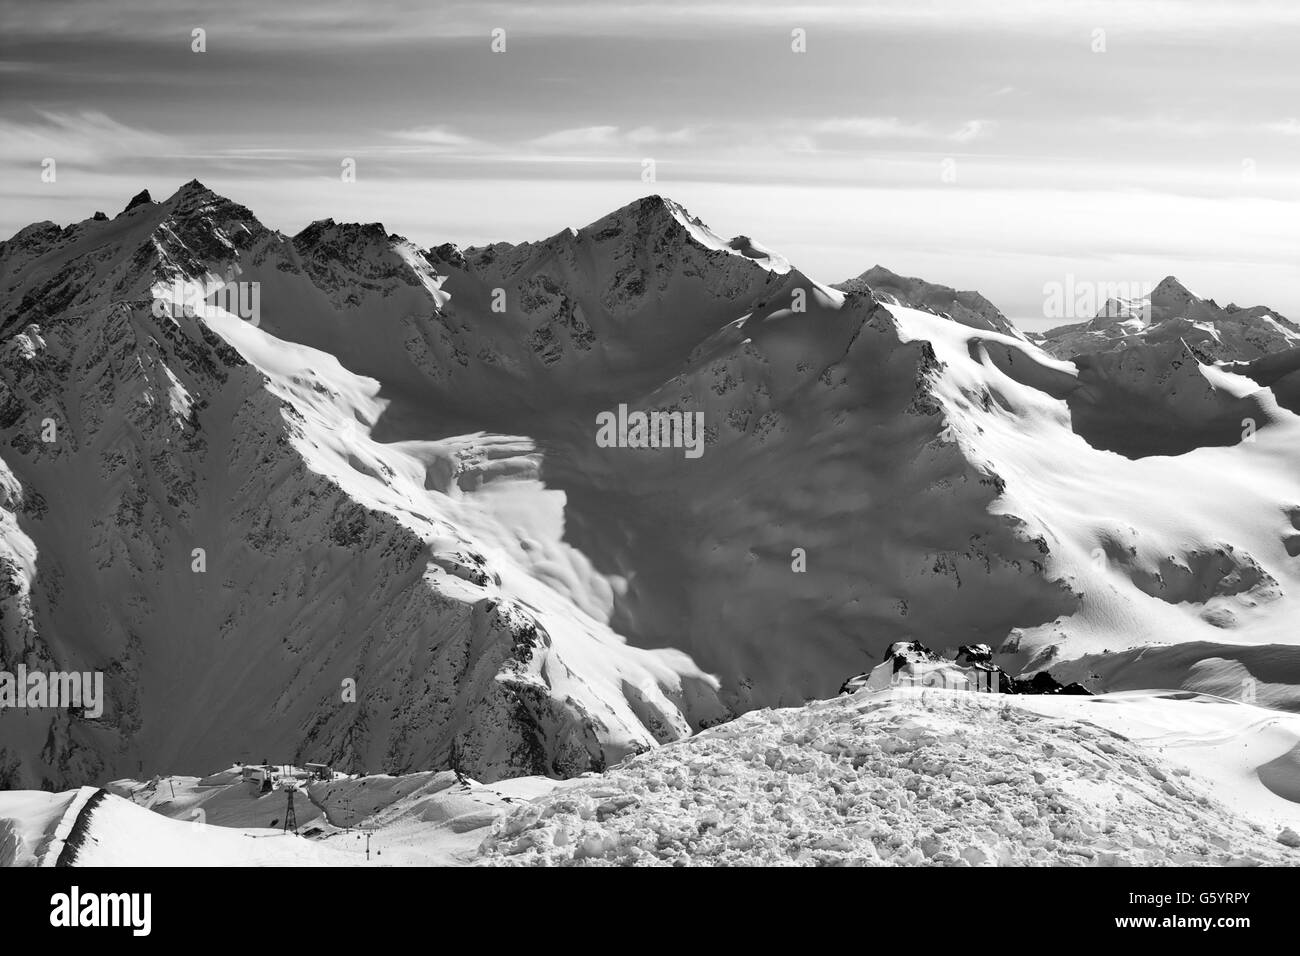 Black and white Snowy off-piste slopes at evening. Caucasus Mountains. View from ski slope of Mount Elbrus. - Stock Image